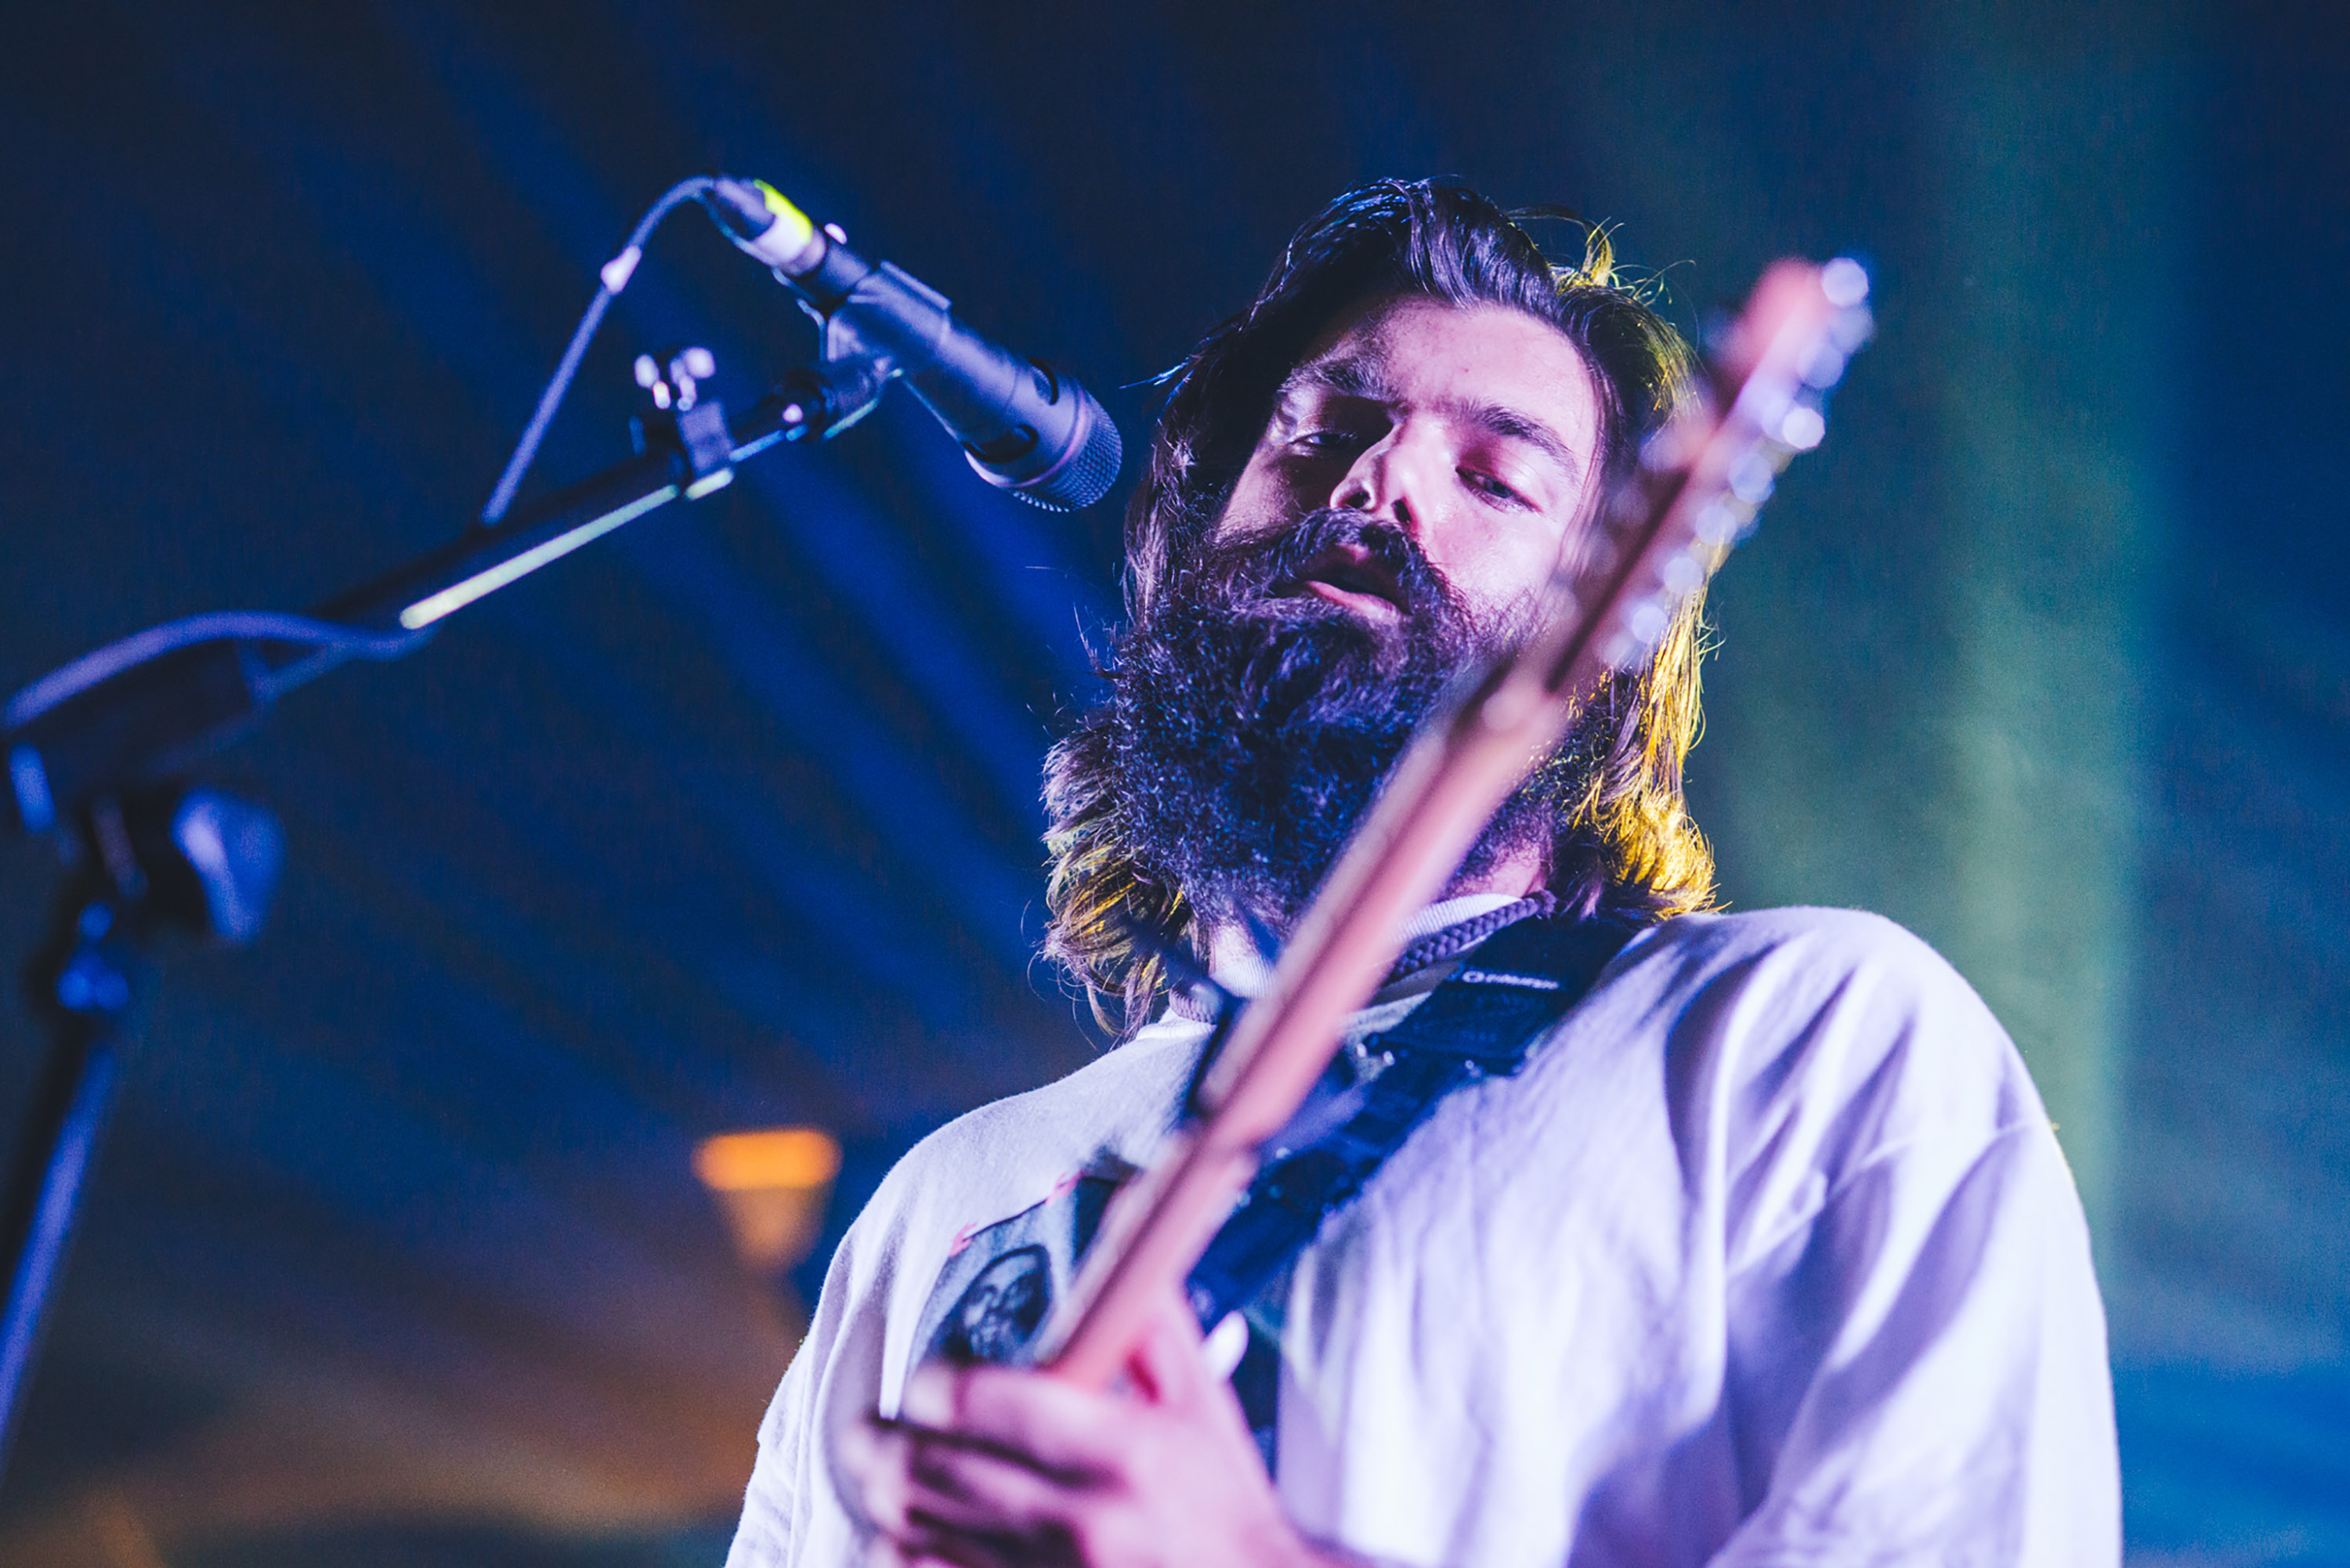 Turnover, The Dome, London